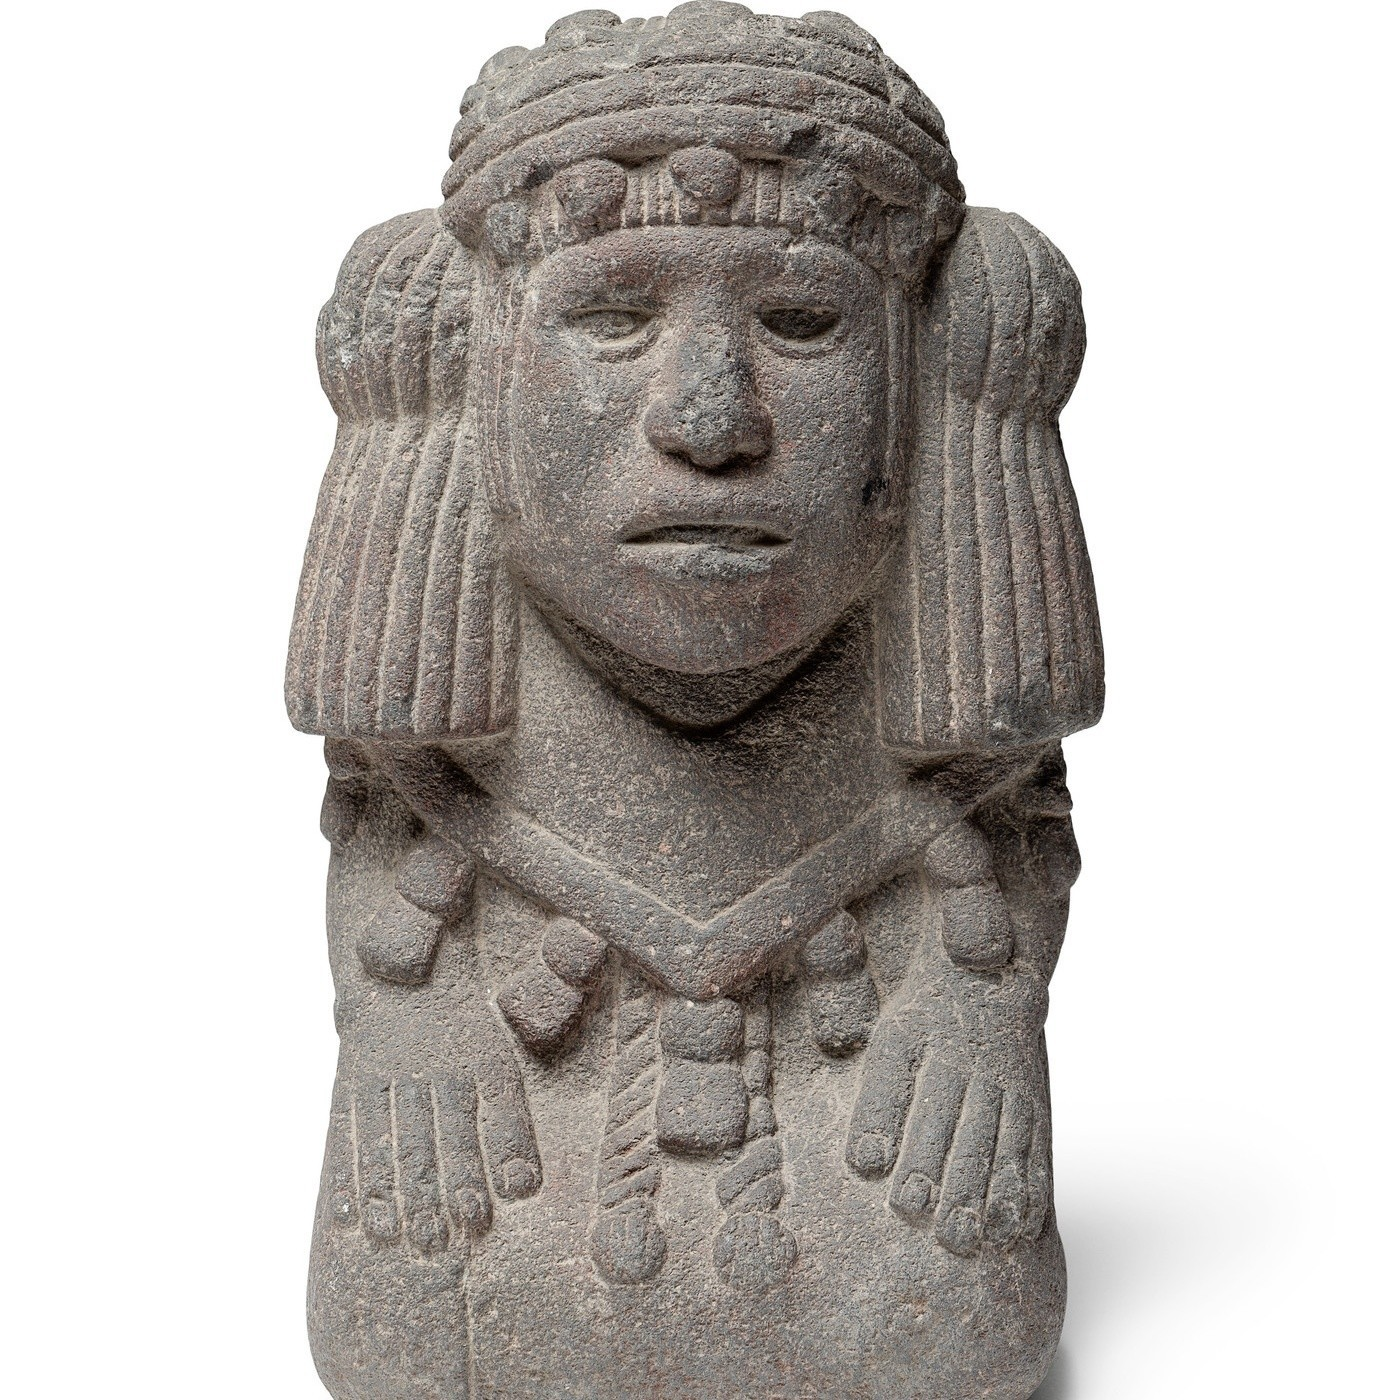 Water deity (Chalchiuhtlicue), Mexico, Aztec, 1200-1521 — part of an exhibition about Picasso and Rivera at LACMA.